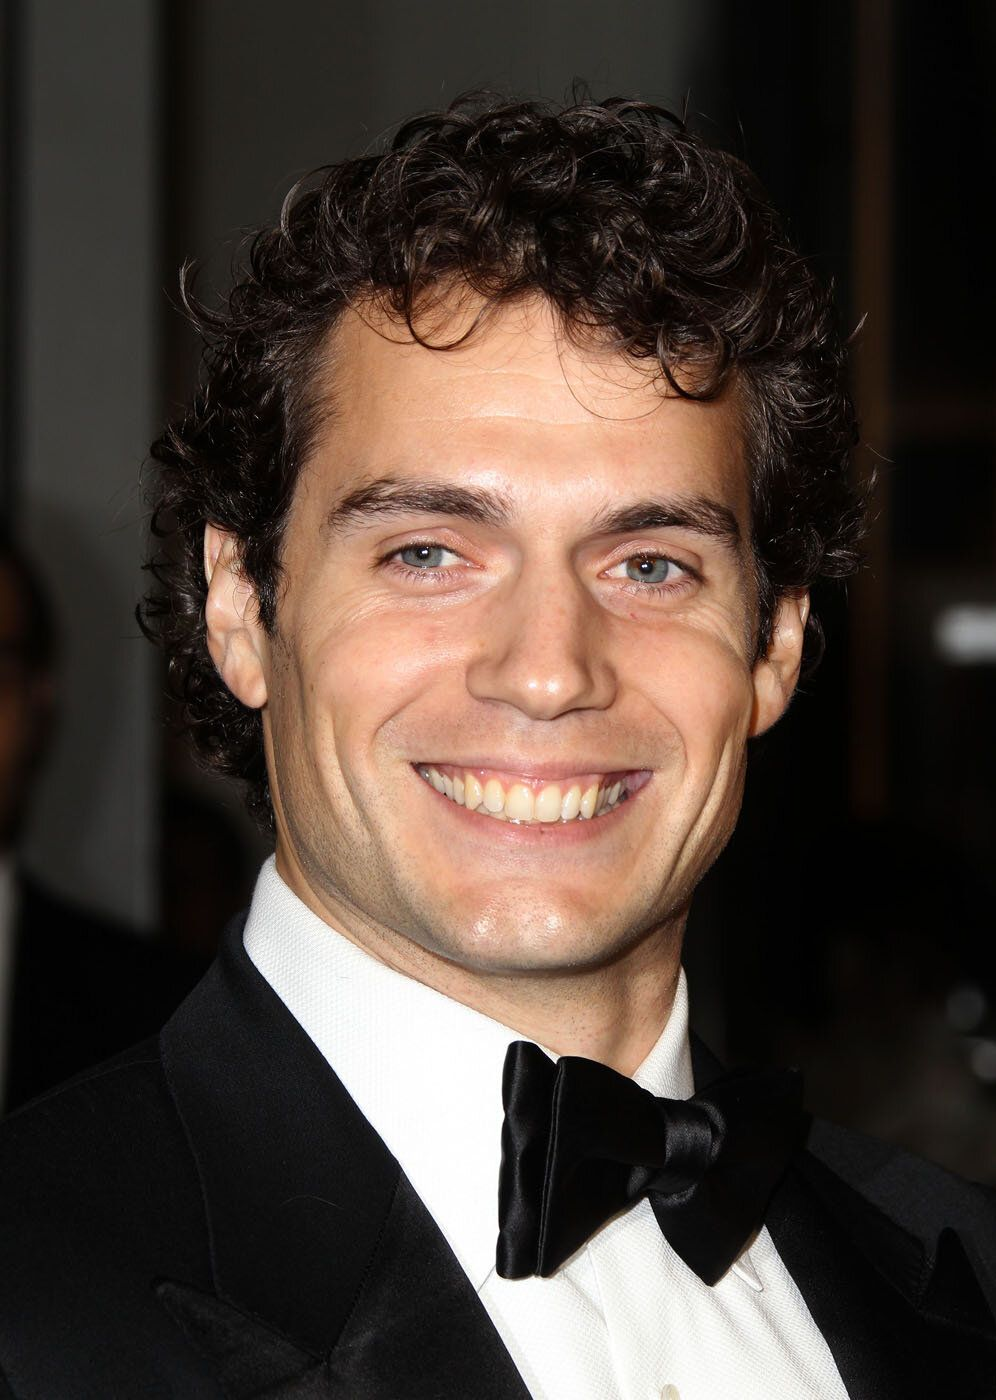 Henry Cavill--the only good part about the new Man of Steel movie